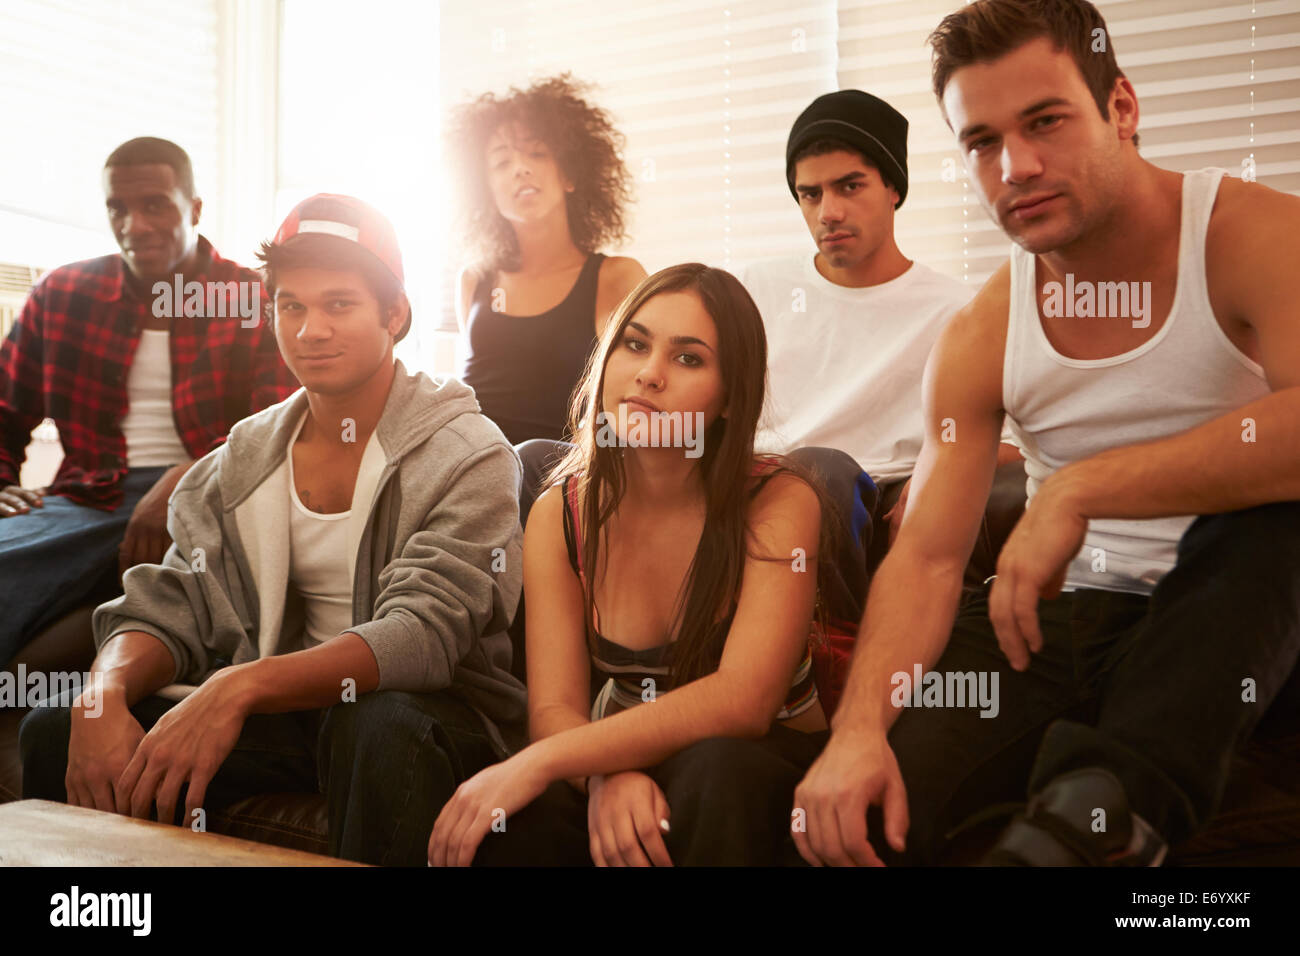 Portrait Of Gang Members Sitting On Sofa In House - Stock Image